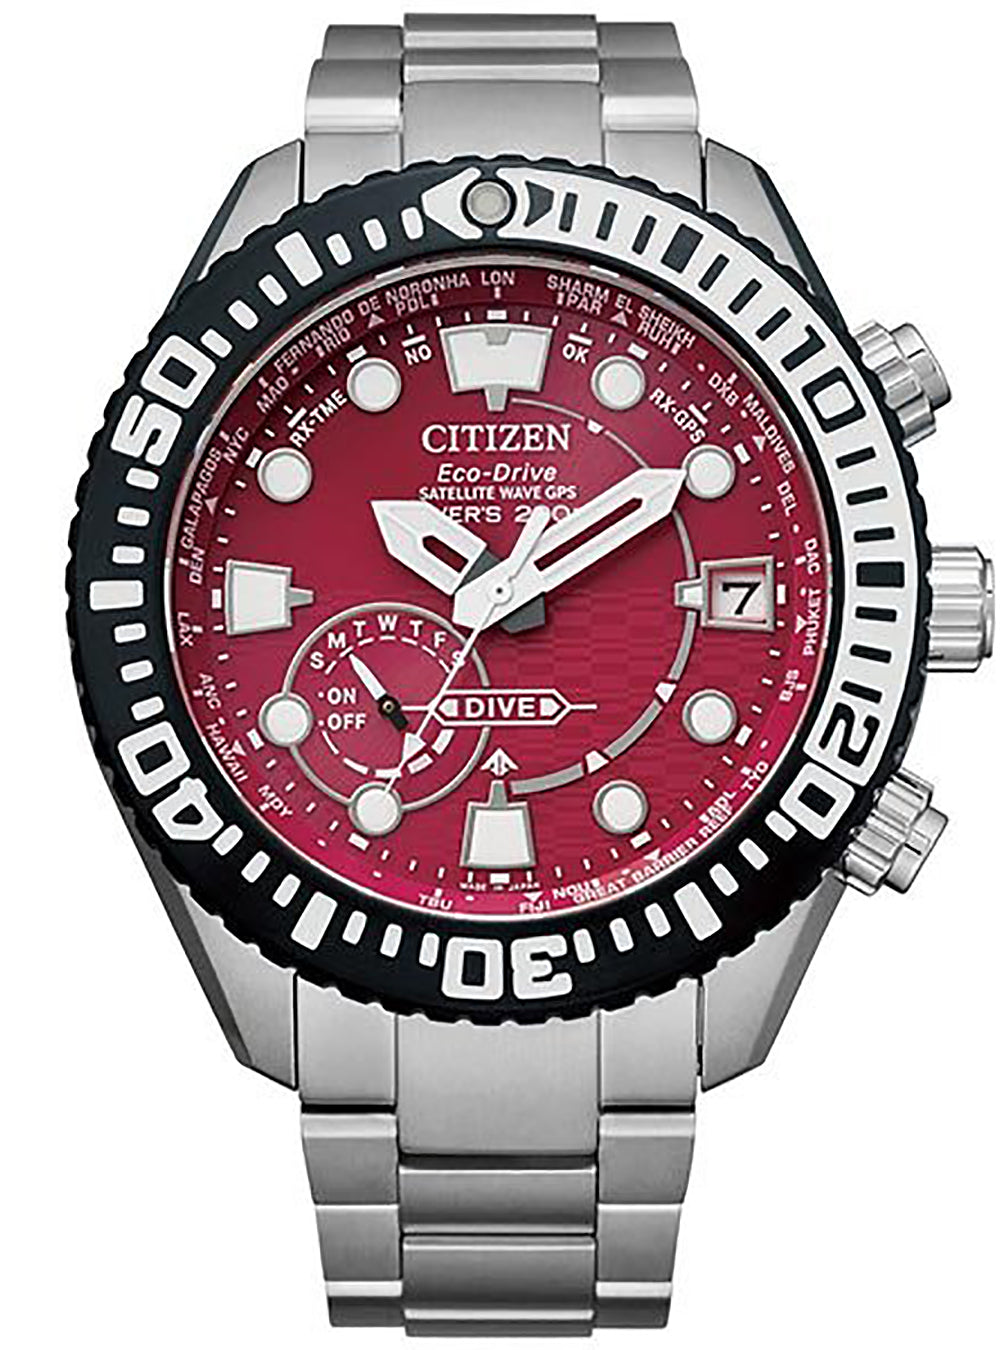 CITIZEN PROMASTER SATELLITE WAVE GPS JOUNETSU COLLECTION CC5005-68Z LIMITED 800 MADE IN JAPAN JDM